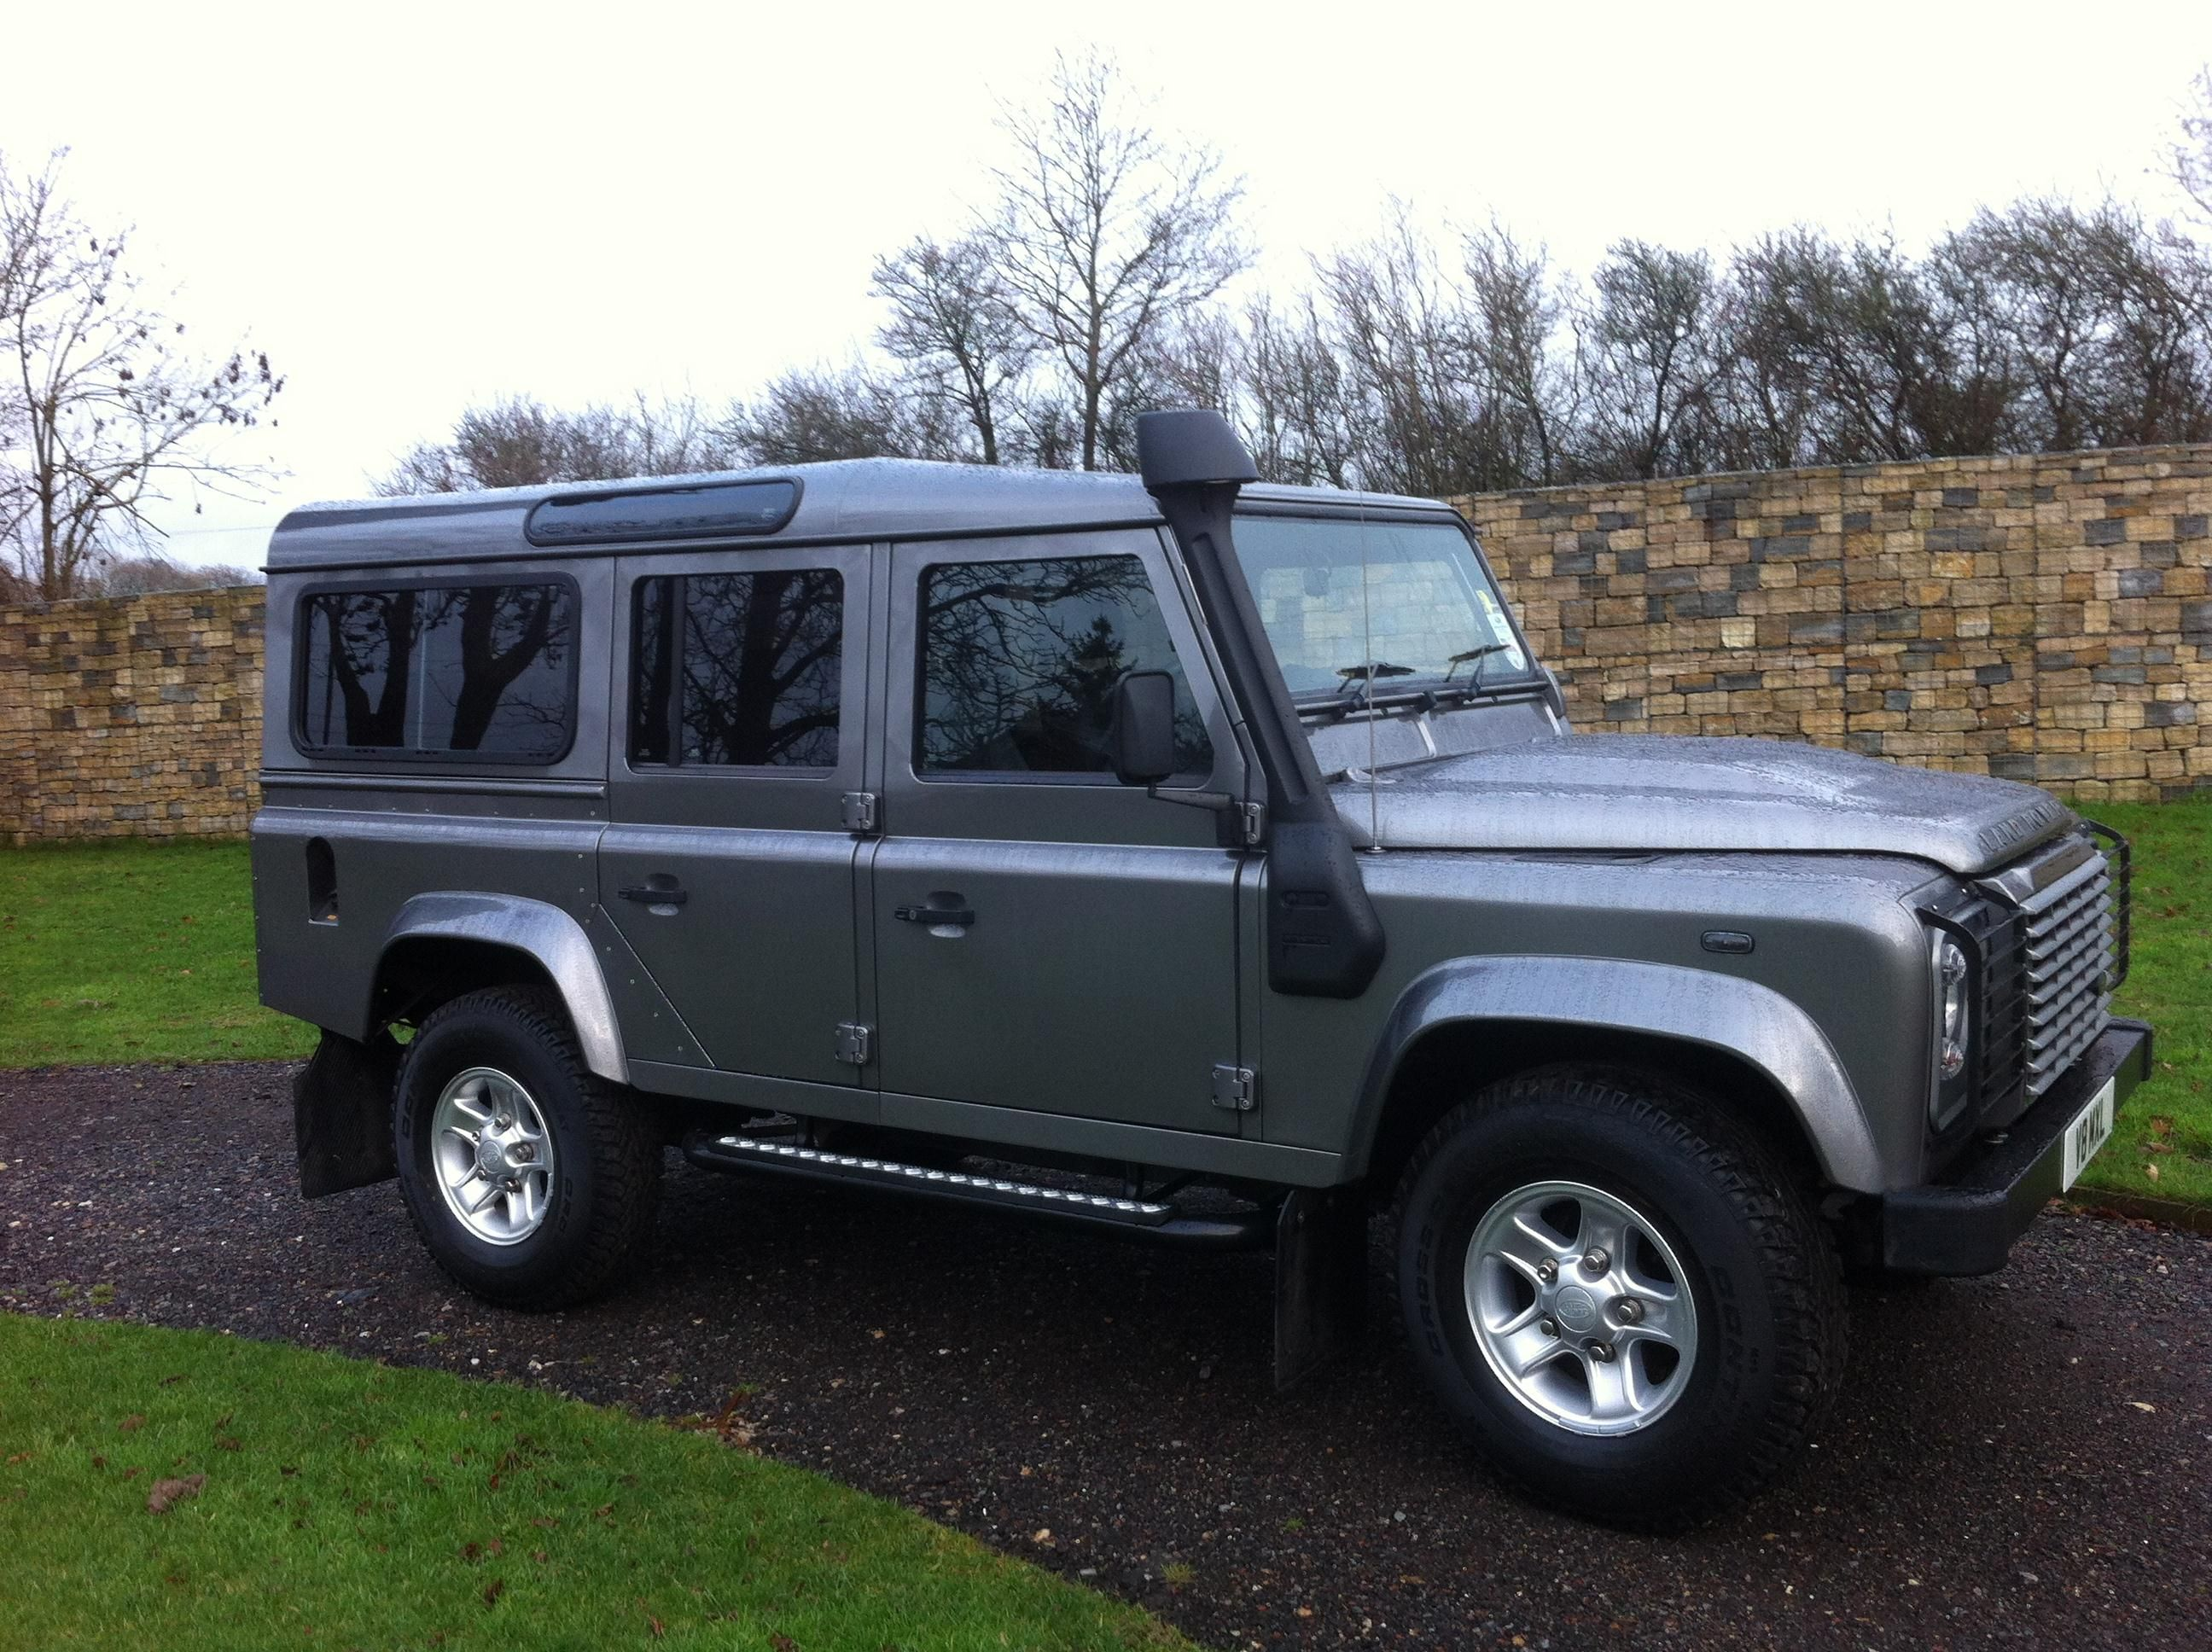 2010 Land Rover Defender 110 Land Rover Defender Land Rover Land Rover Defender 110